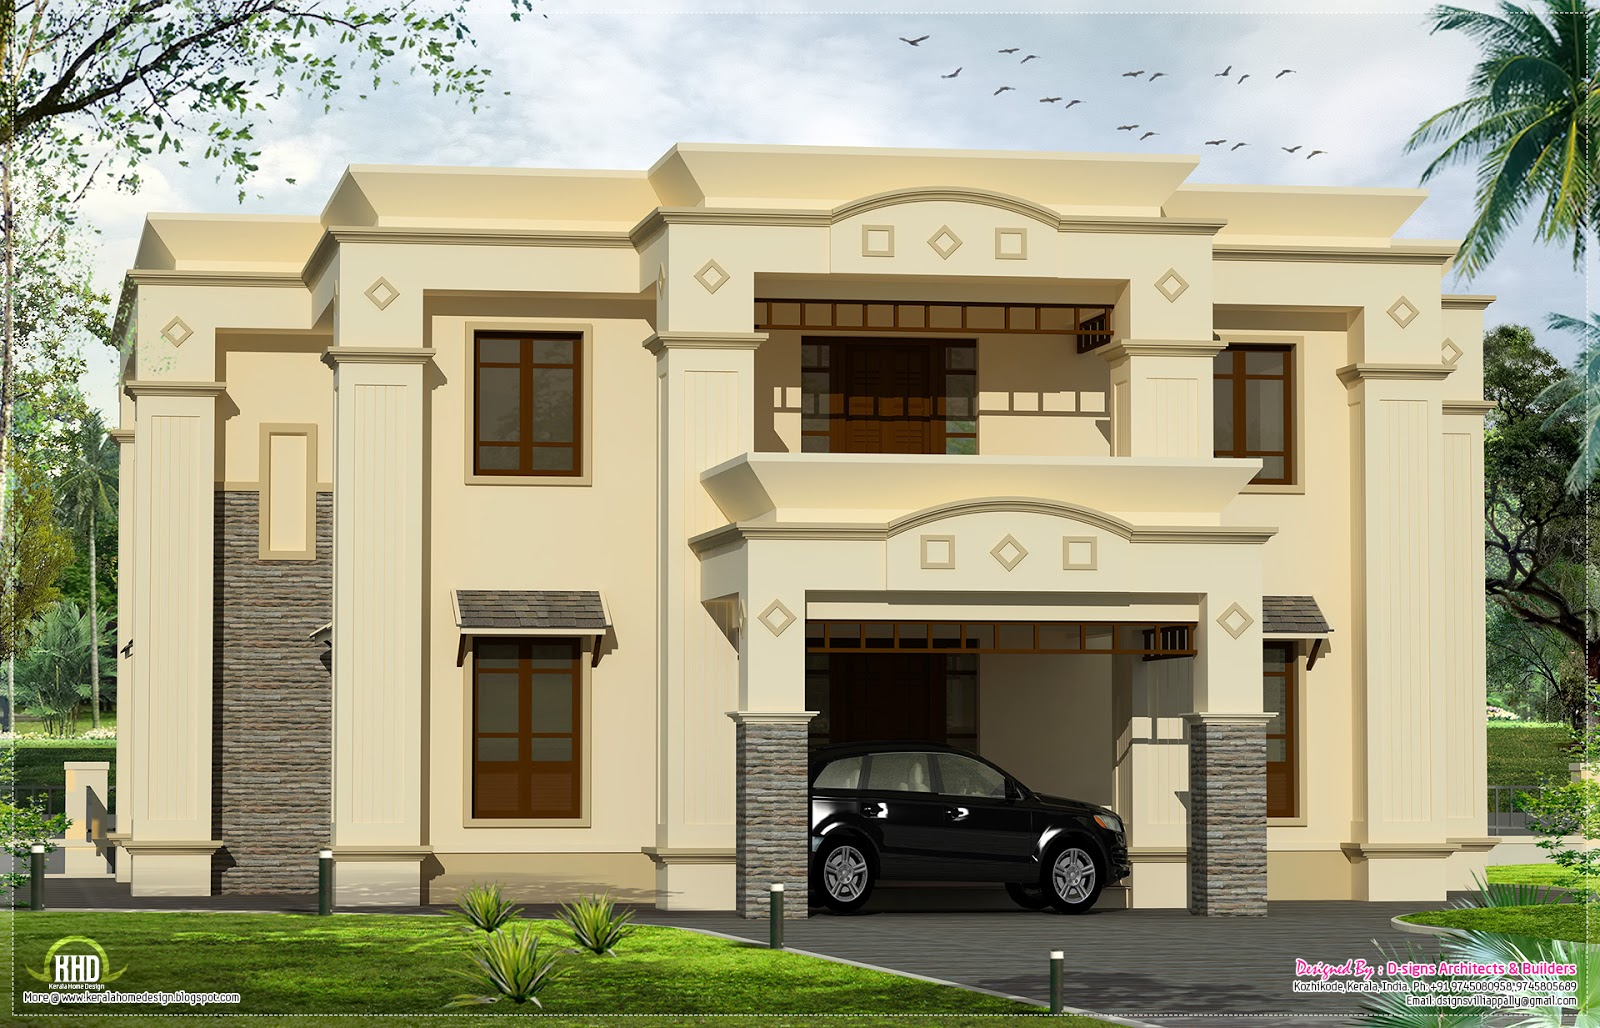 2700 luxury home kerala home design and floor plans for 300 sq ft house plans in india